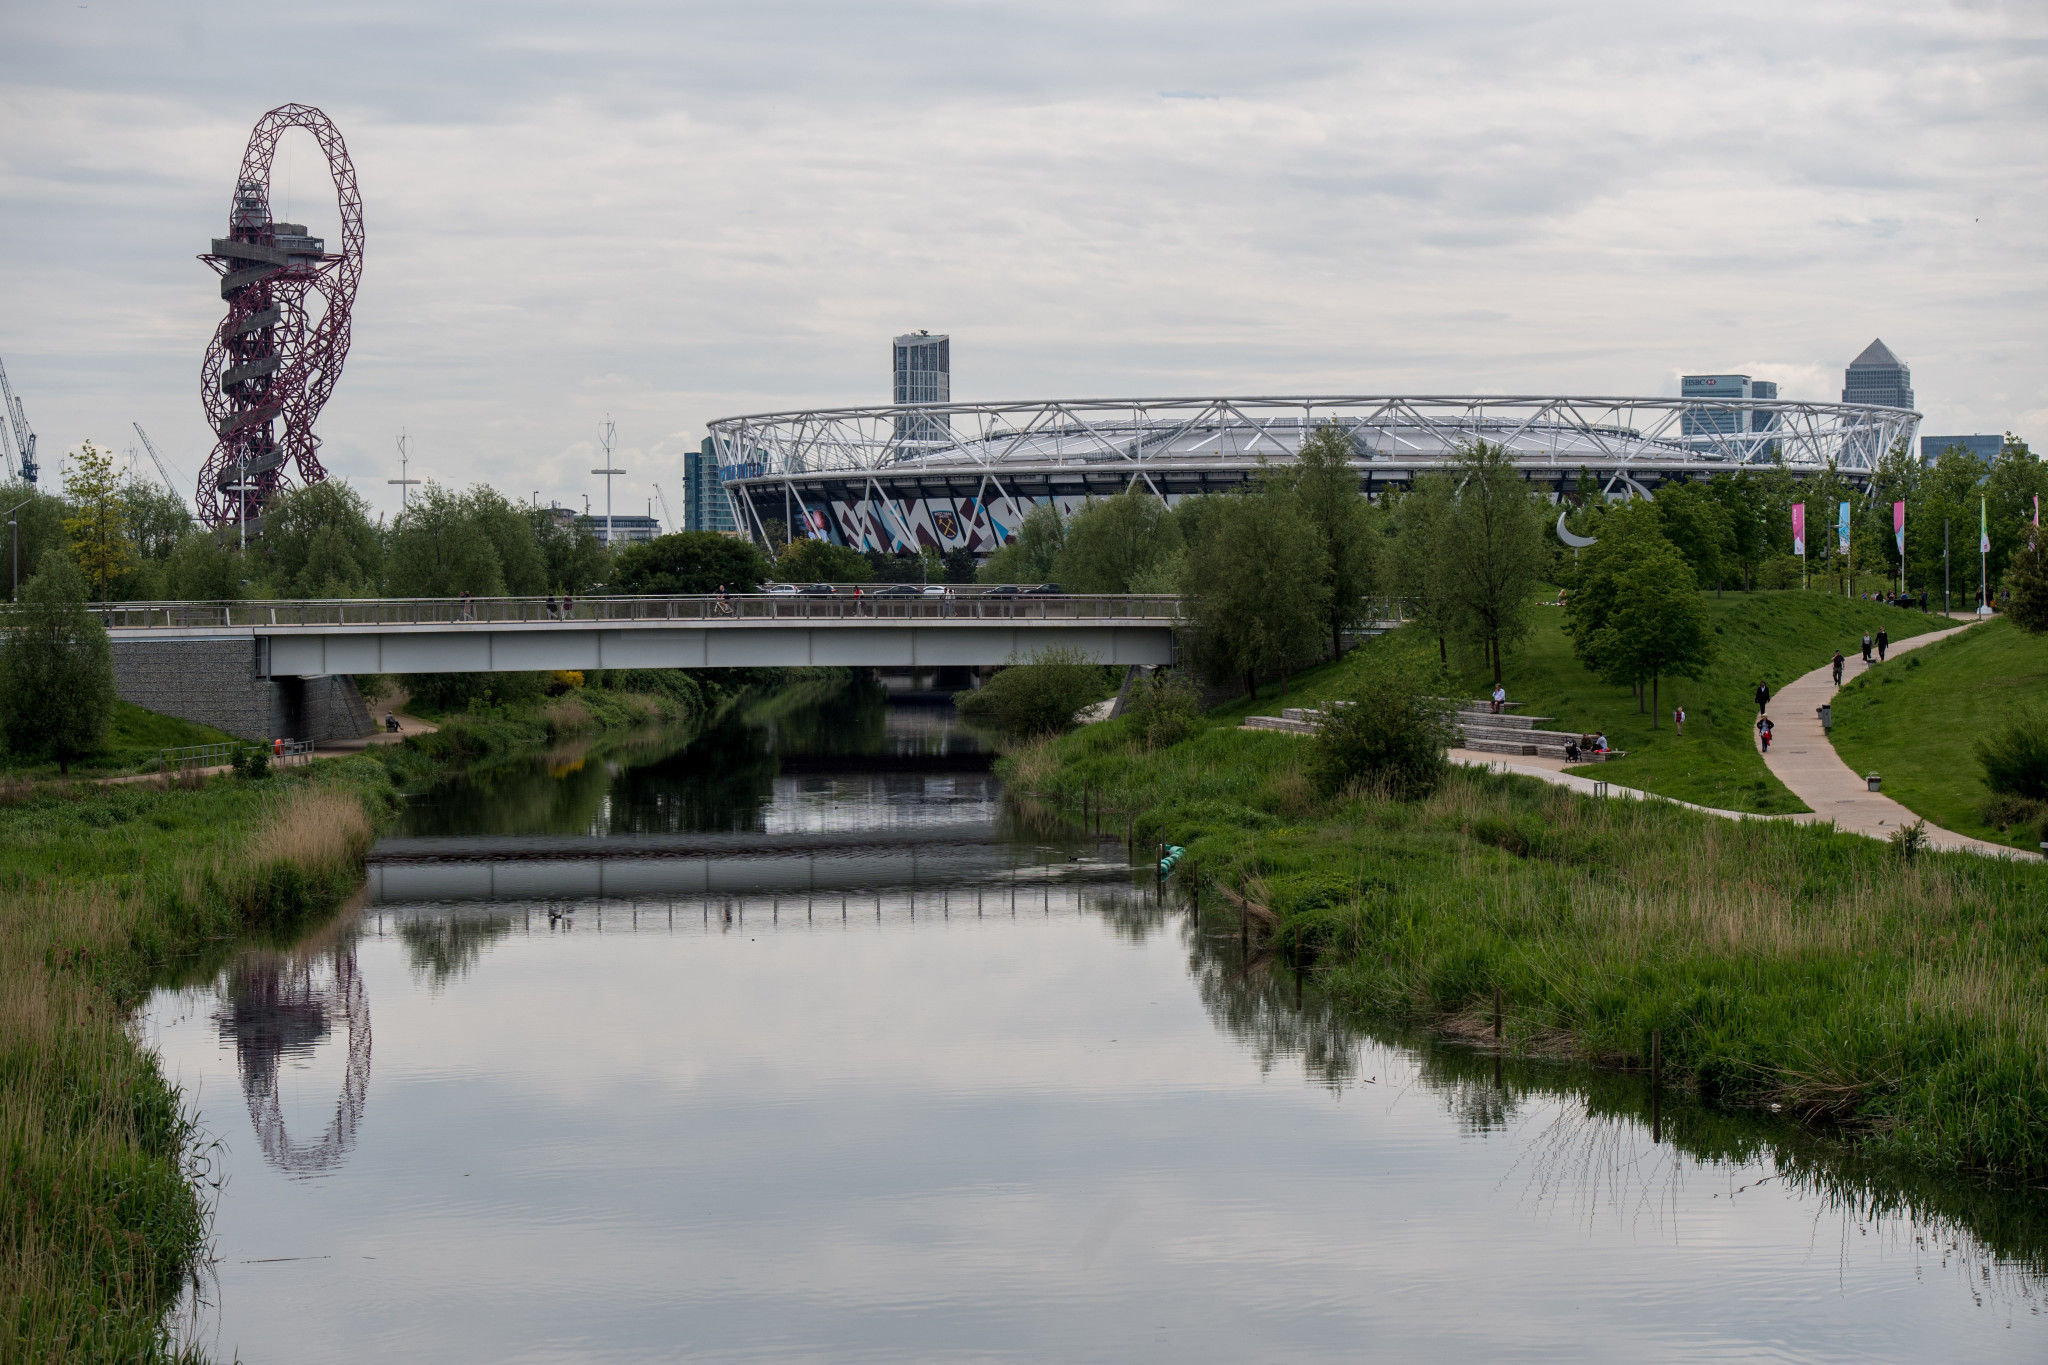 London's East End has been transformed by the building of the Olympic Park - but who's telling the story post-2012 ow that the Organising Committee has disbanded? ©Getty Images